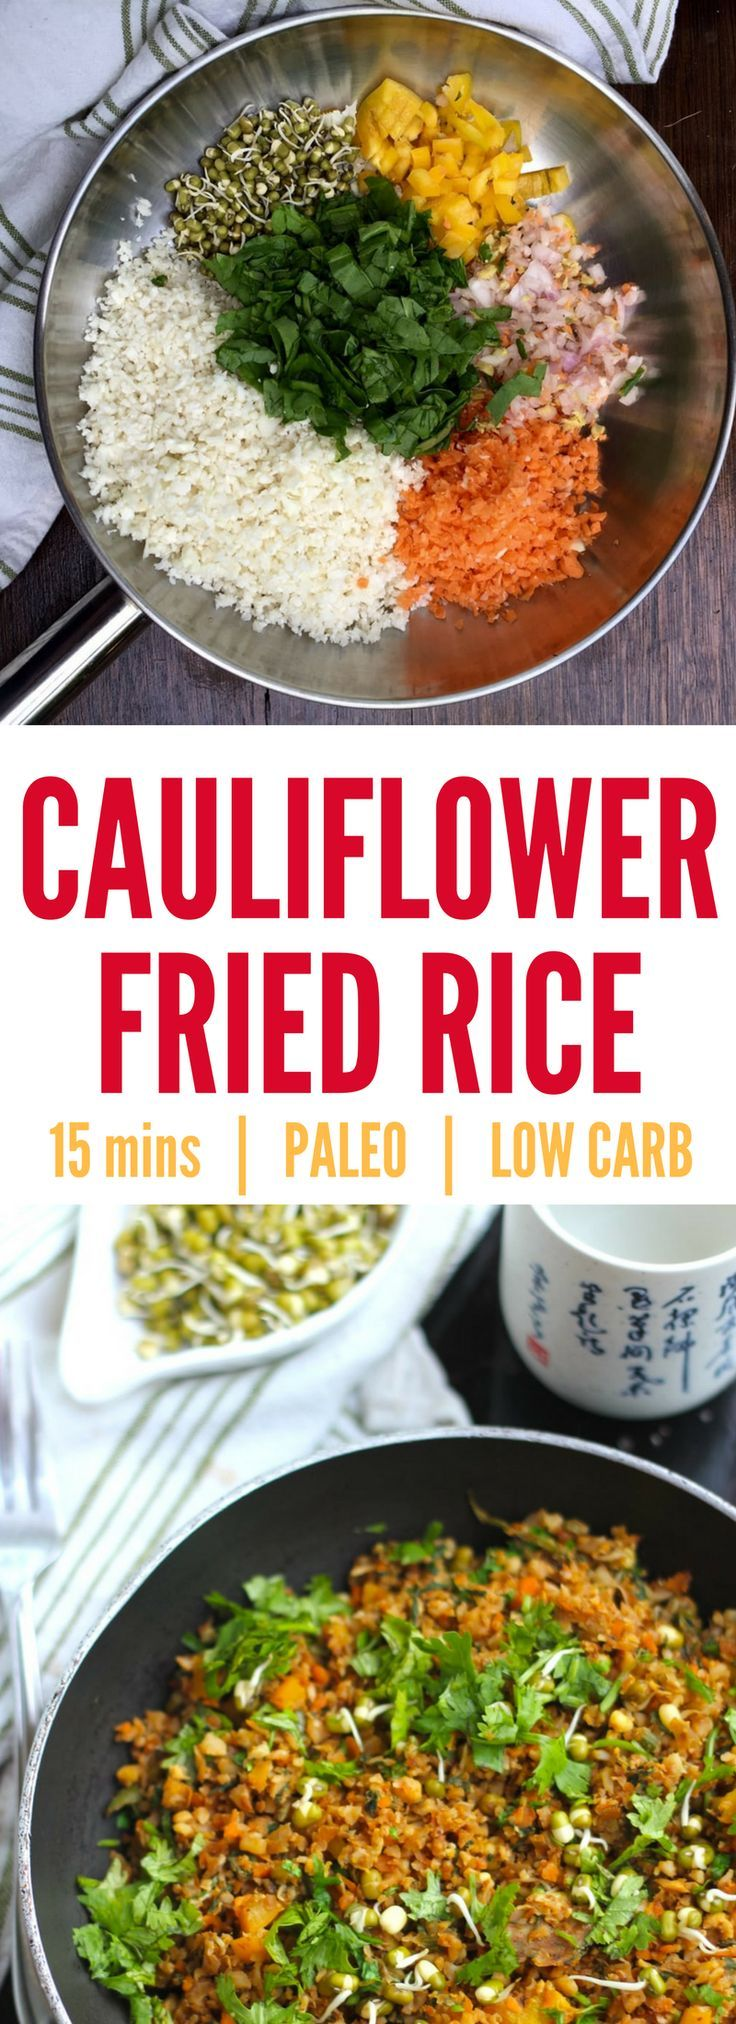 Recipe for quick and easy 15 minute cauliflower egg fried 'rice' -at 171 calories. So delicious you won't miss the rice. Makes an excellent fast day recipe for those on the 5-2 diet. Replace egg with tofu if you're vegan! Cauliflower rice - cauliflower fried rice - cauliflower recipes - fast day 5:2 - fast day meals